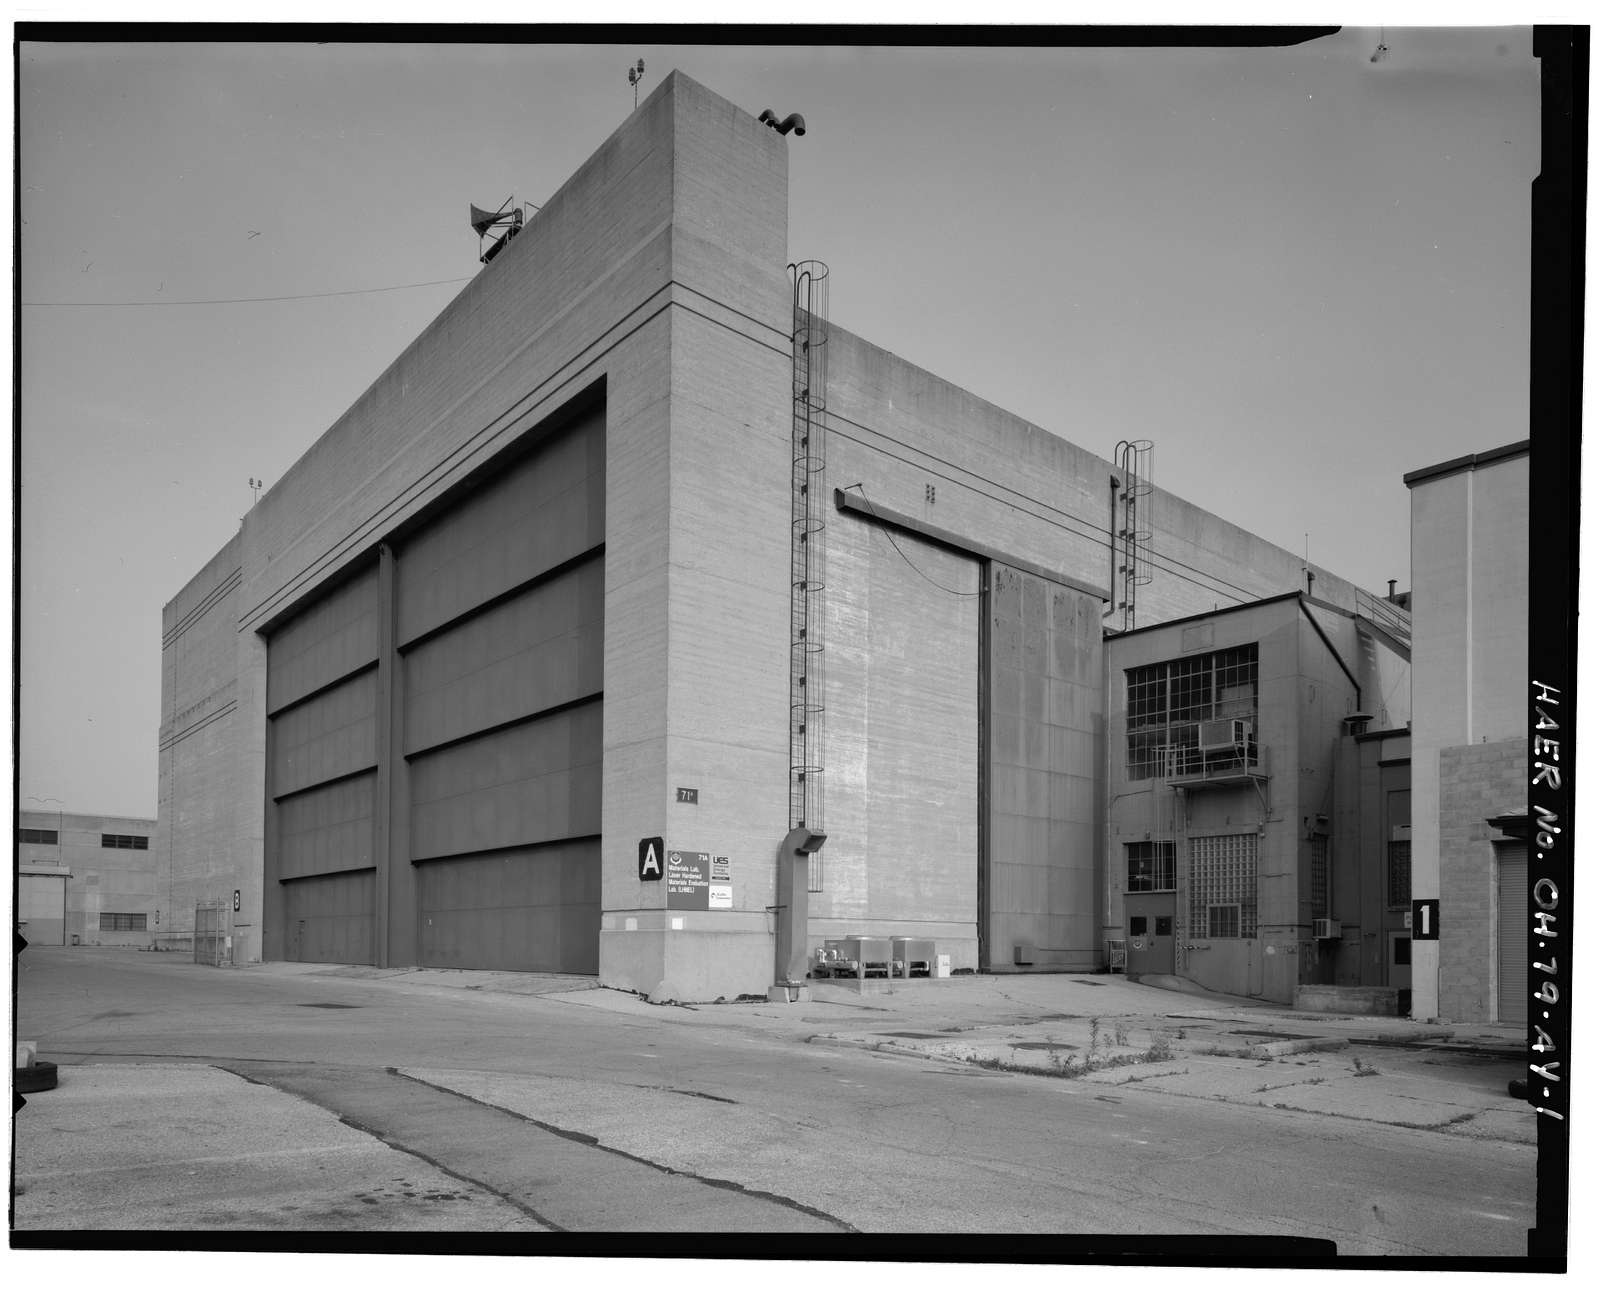 Wright-Patterson Air Force Base, Area B, Building 71A, Propulsion Research Laboratory, Seventh Street between D & G Streets, Dayton, Montgomery County, OH